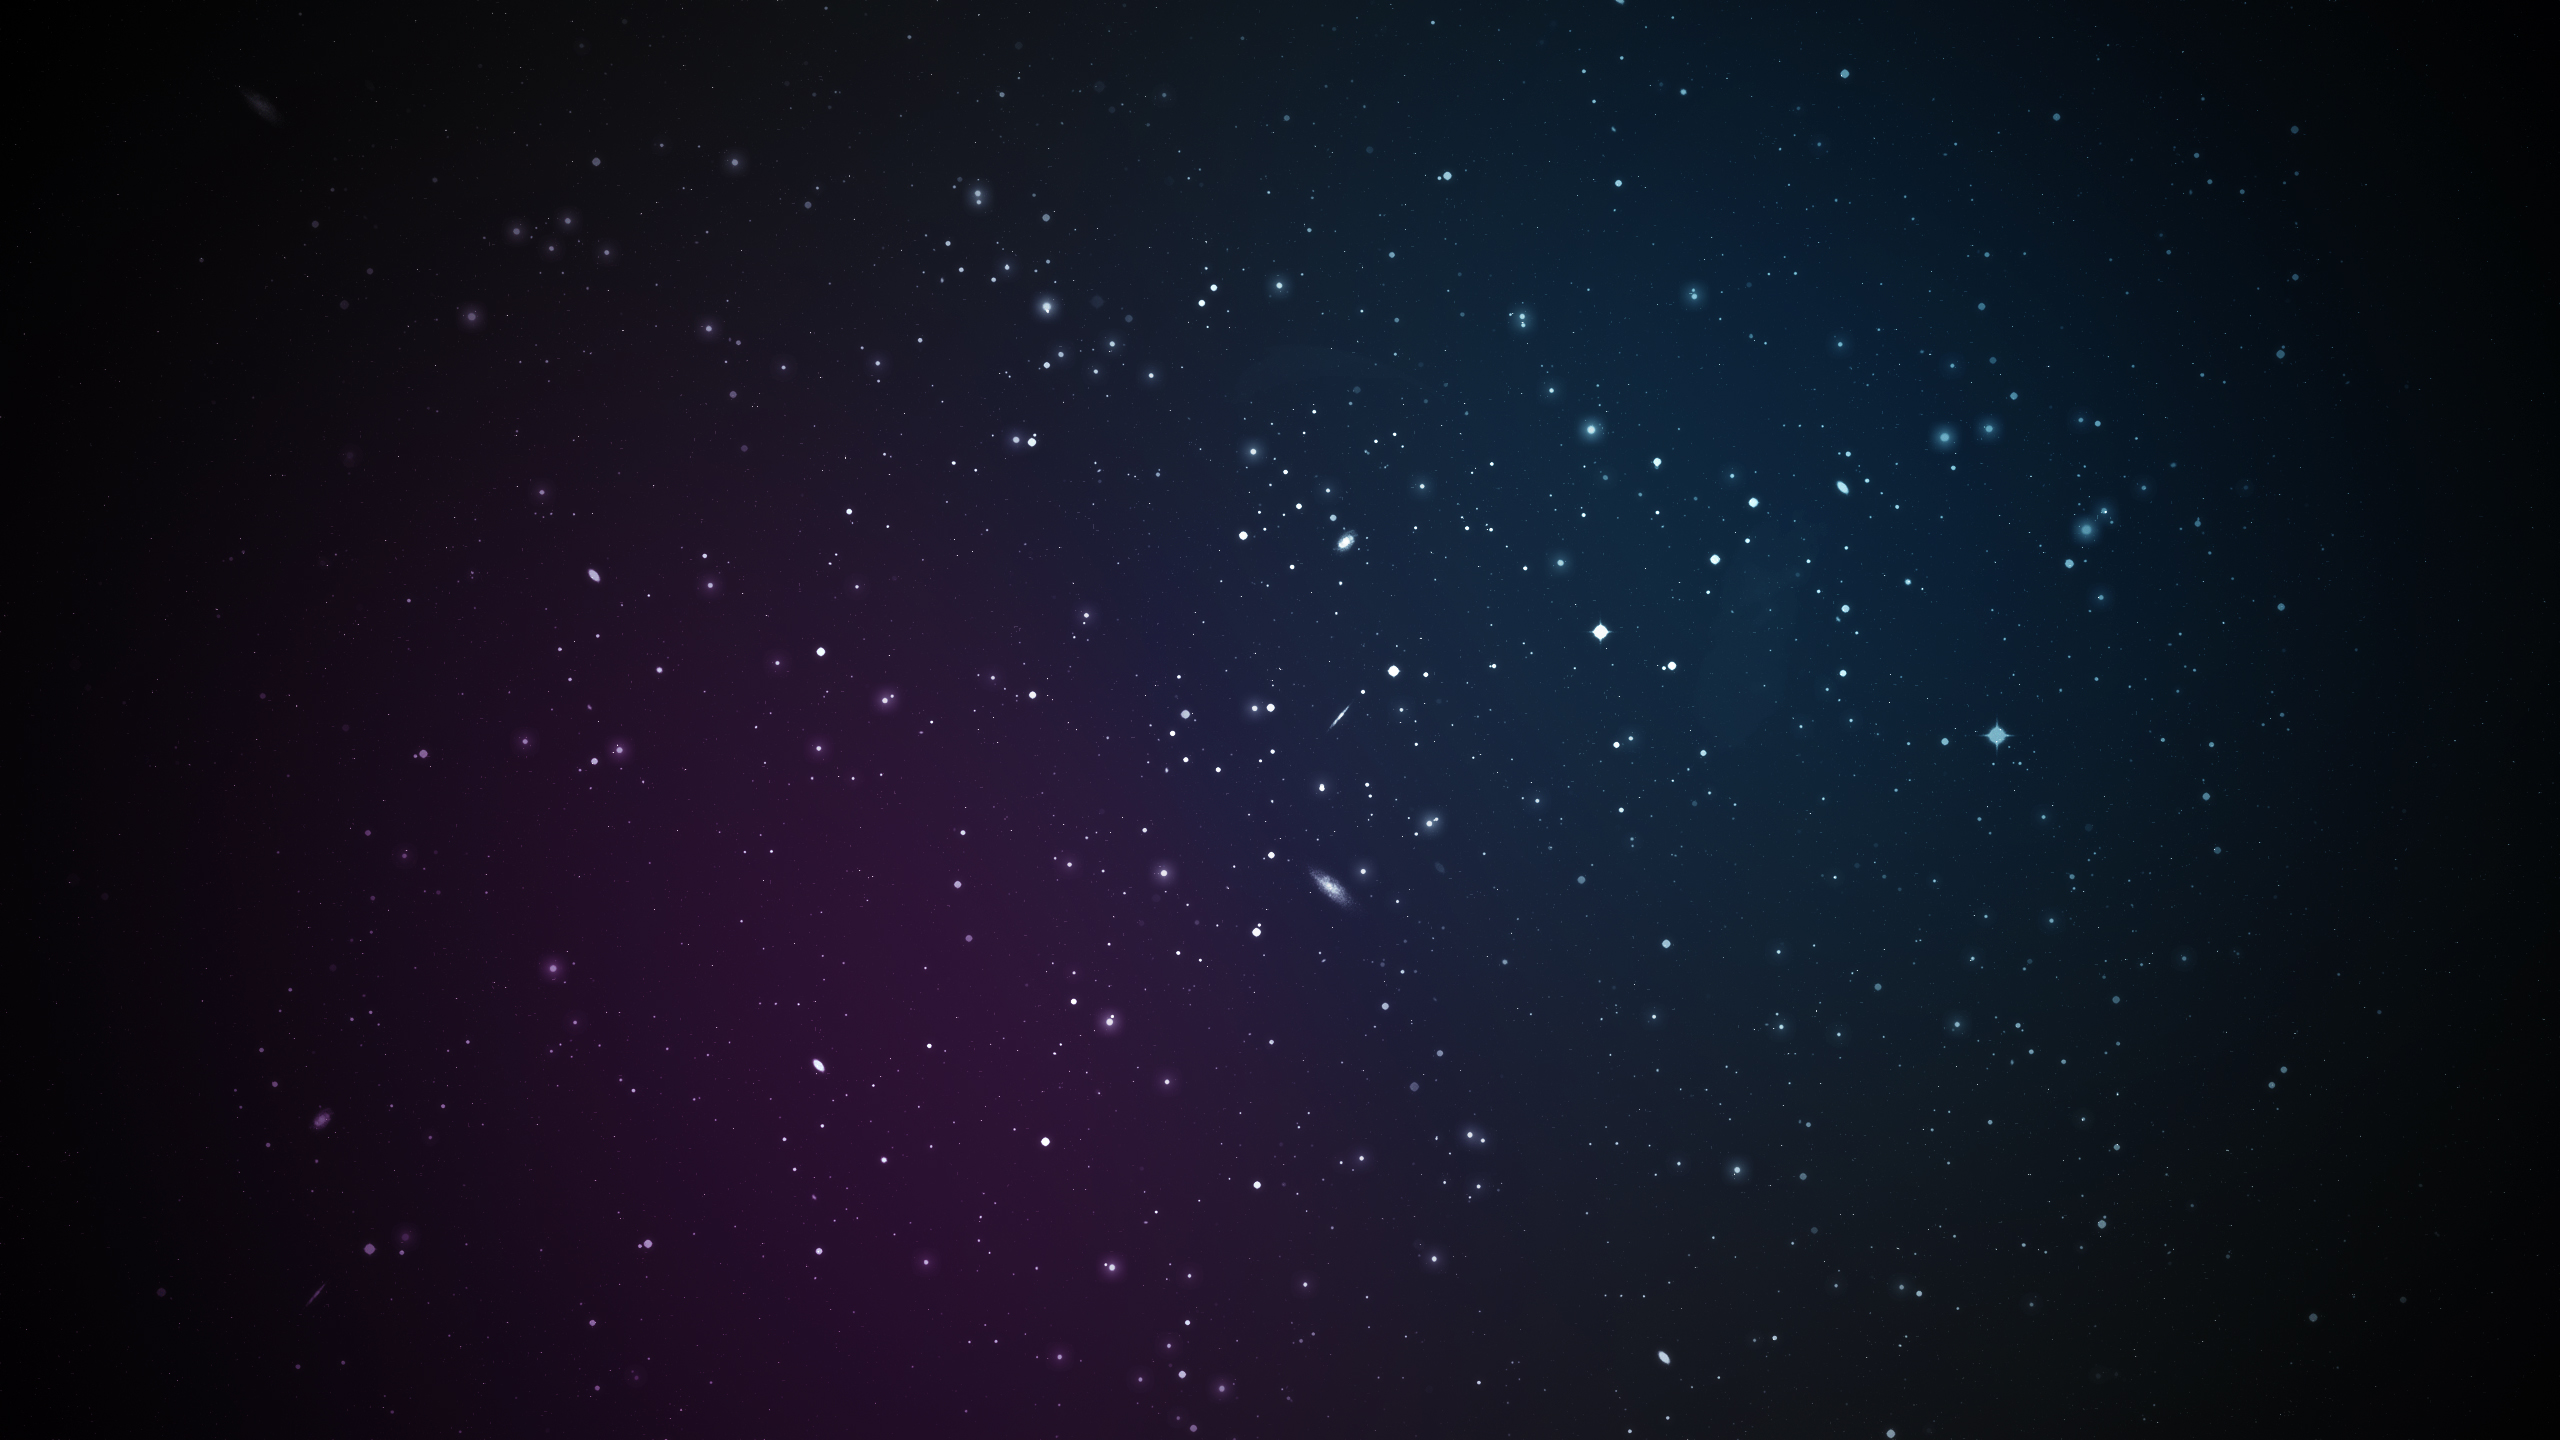 Awesome Galaxy HD Wallpaper Pack 86 | Free Download